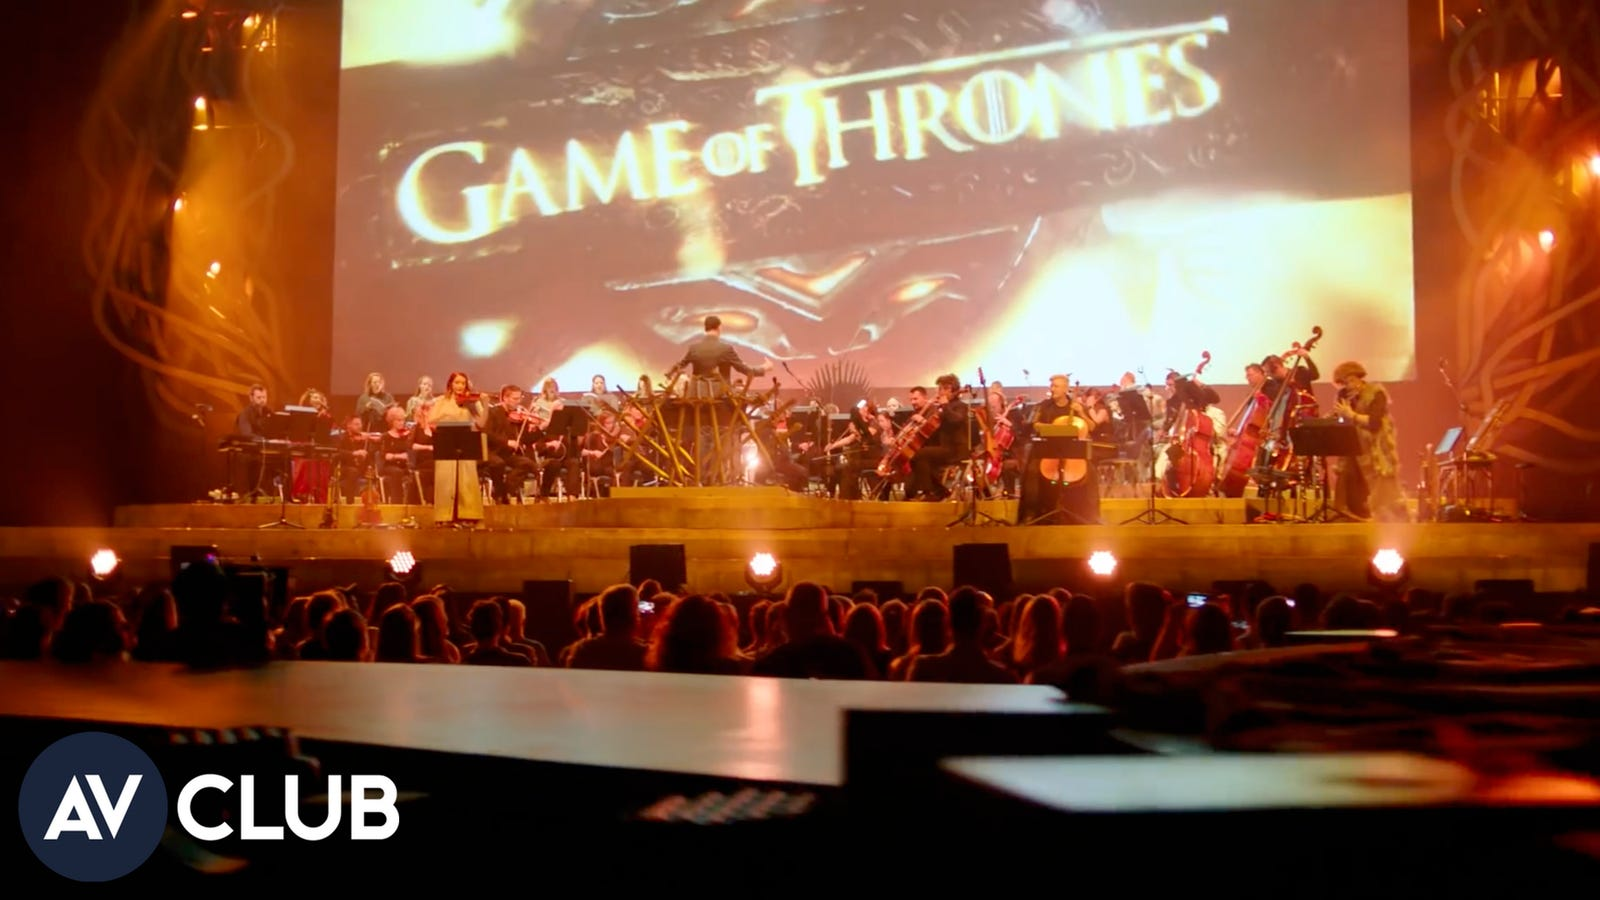 Game Of Thrones composer Ramin Djawadi loves playing the show's score live